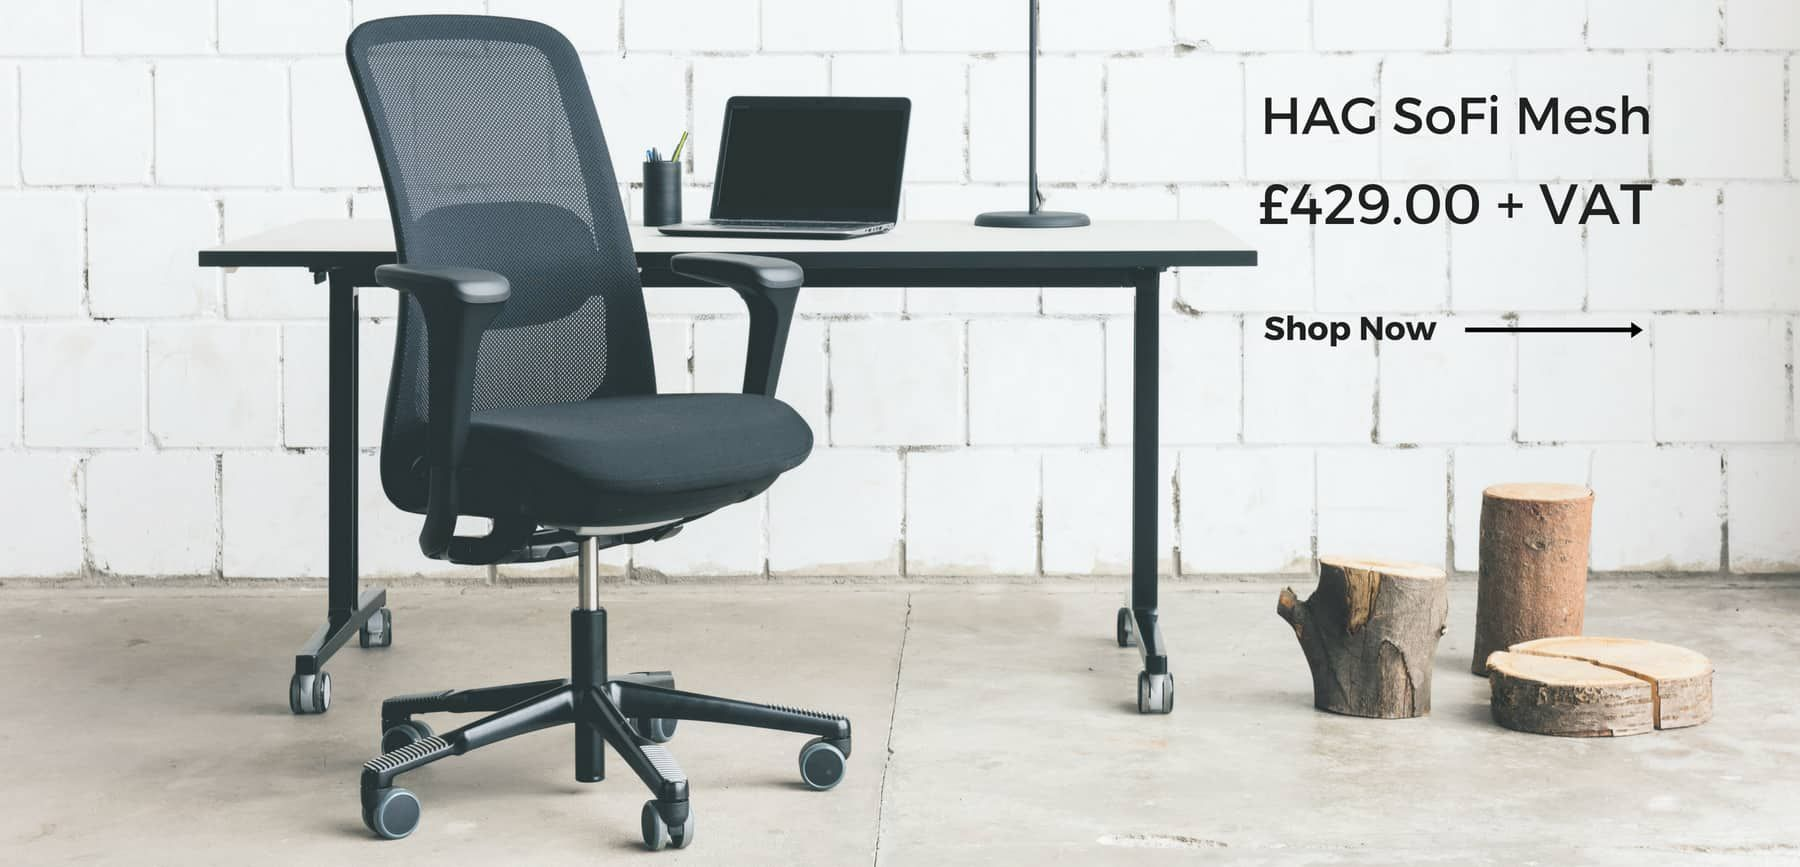 Varier Variable Balans Kneeling Chair in Office Setting